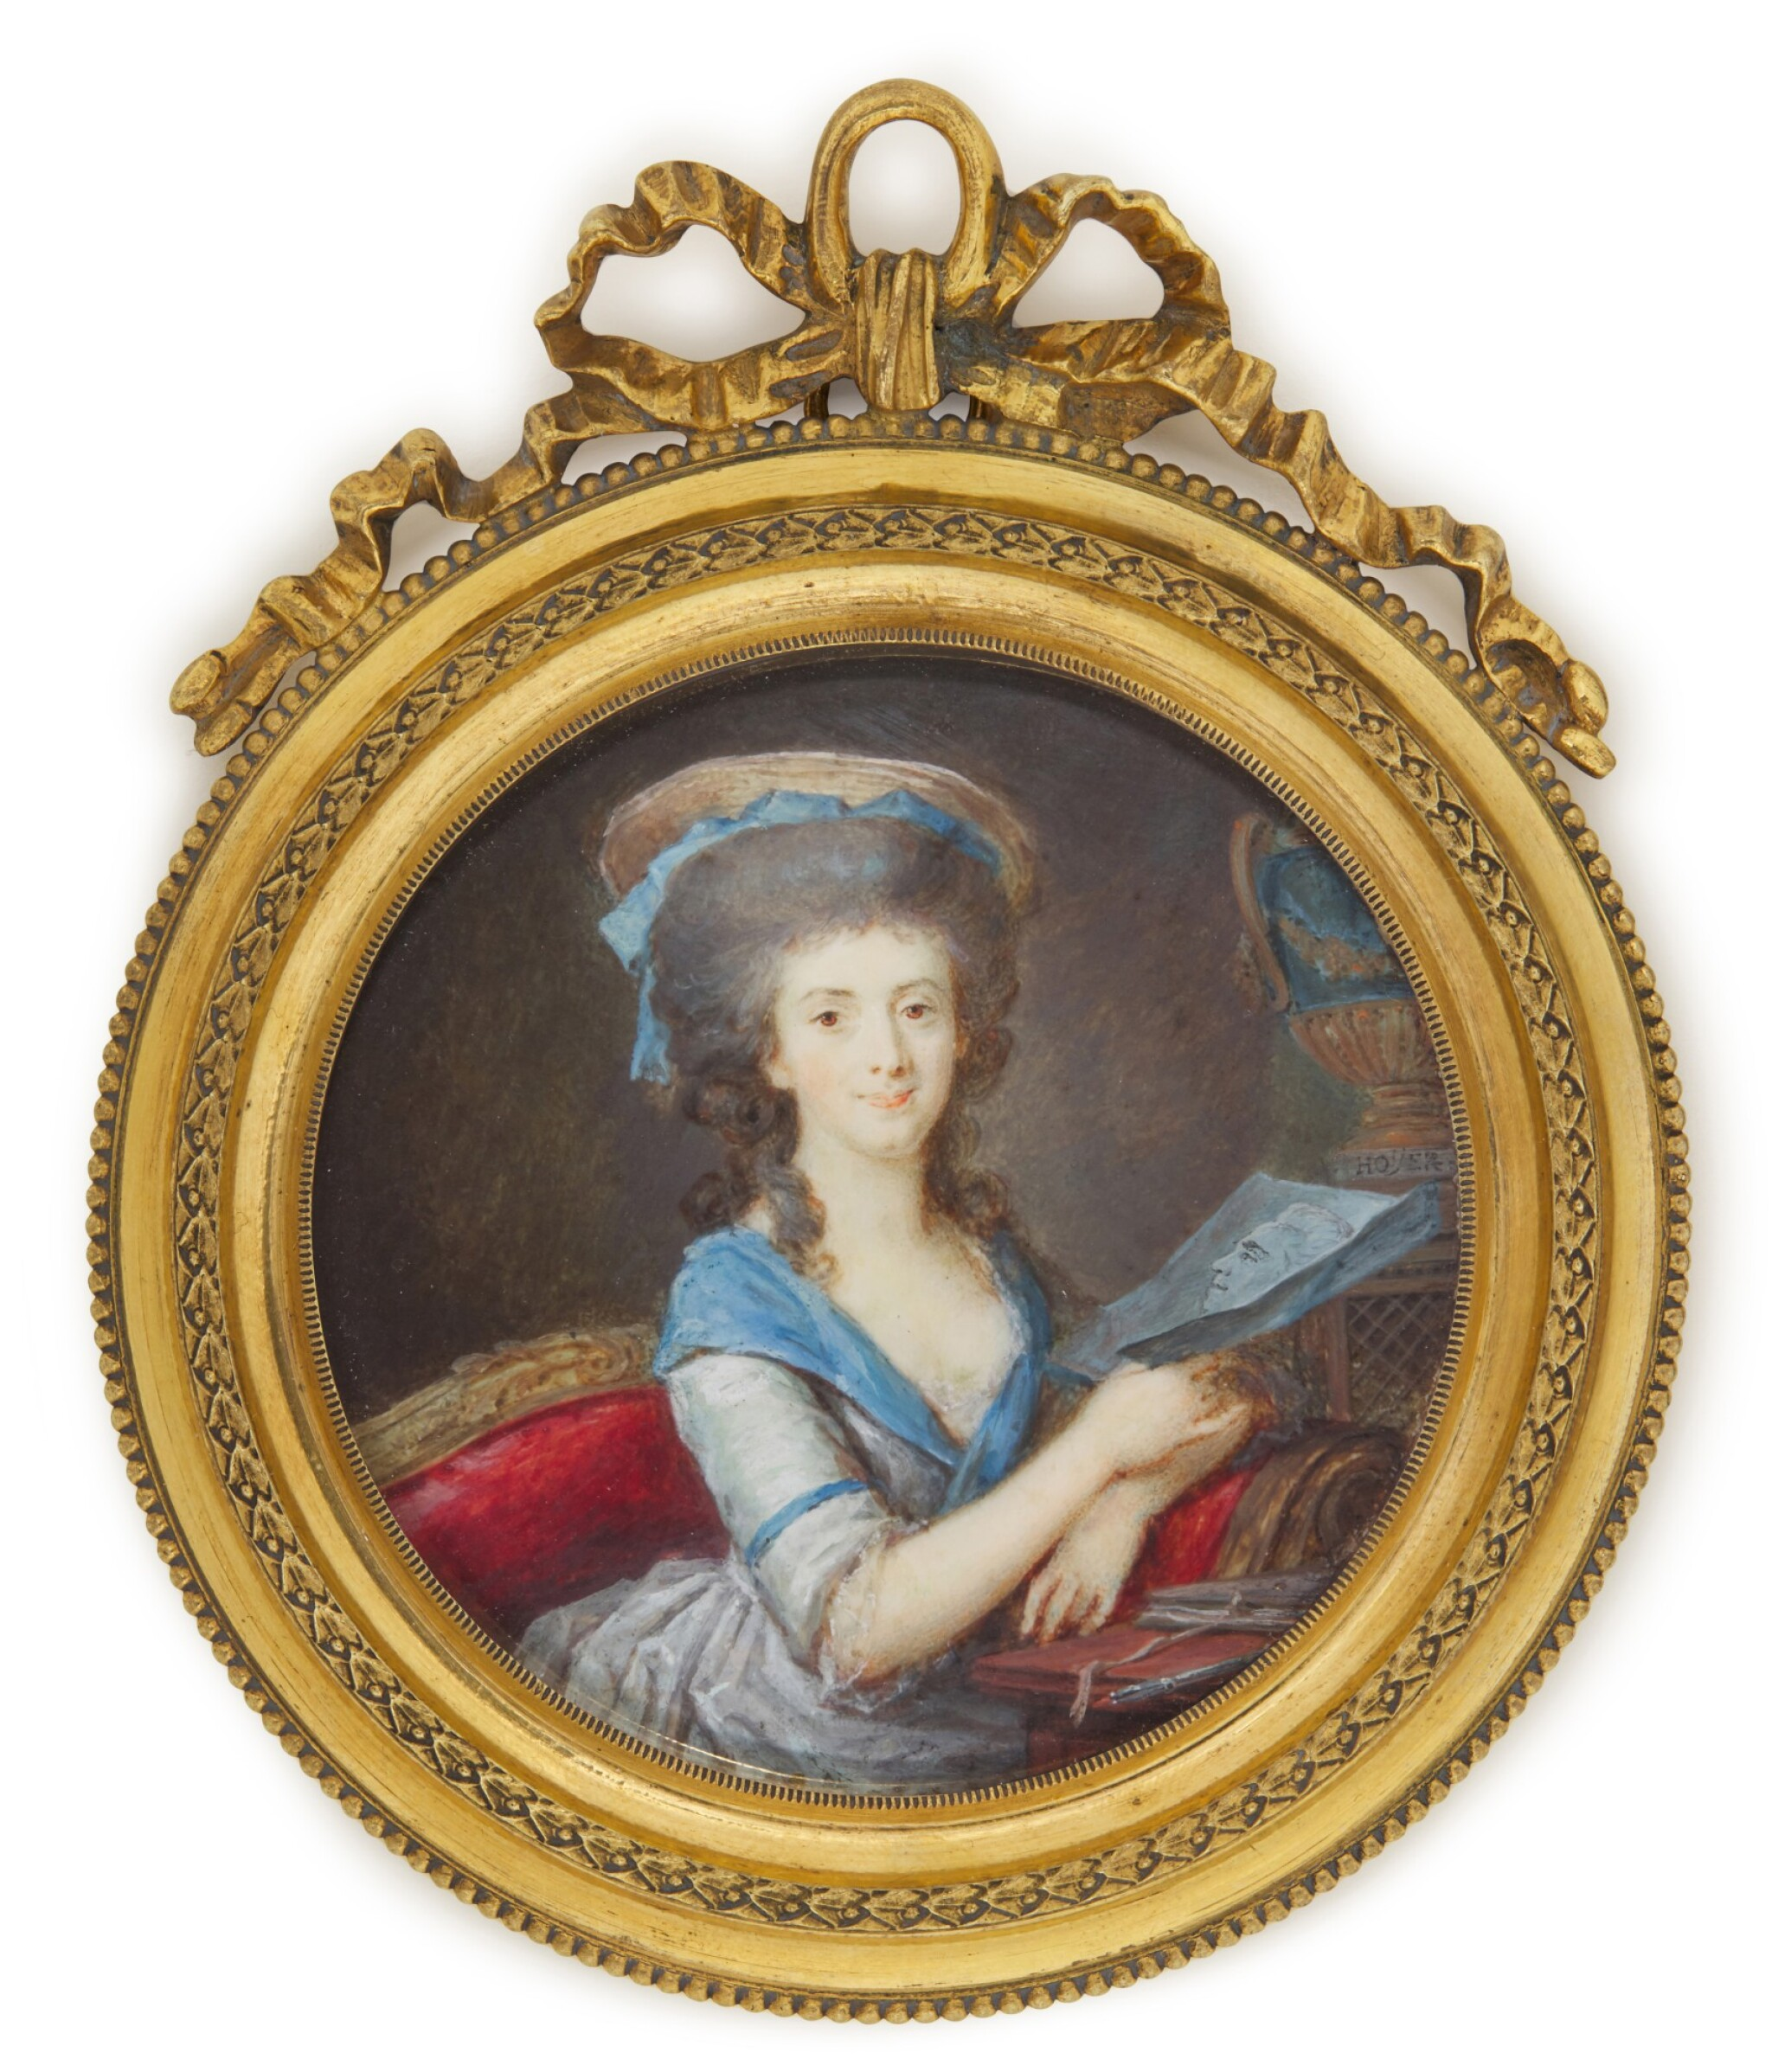 View 1 of Lot 134. Portrait of a lady holding a drawing, circa 1785.